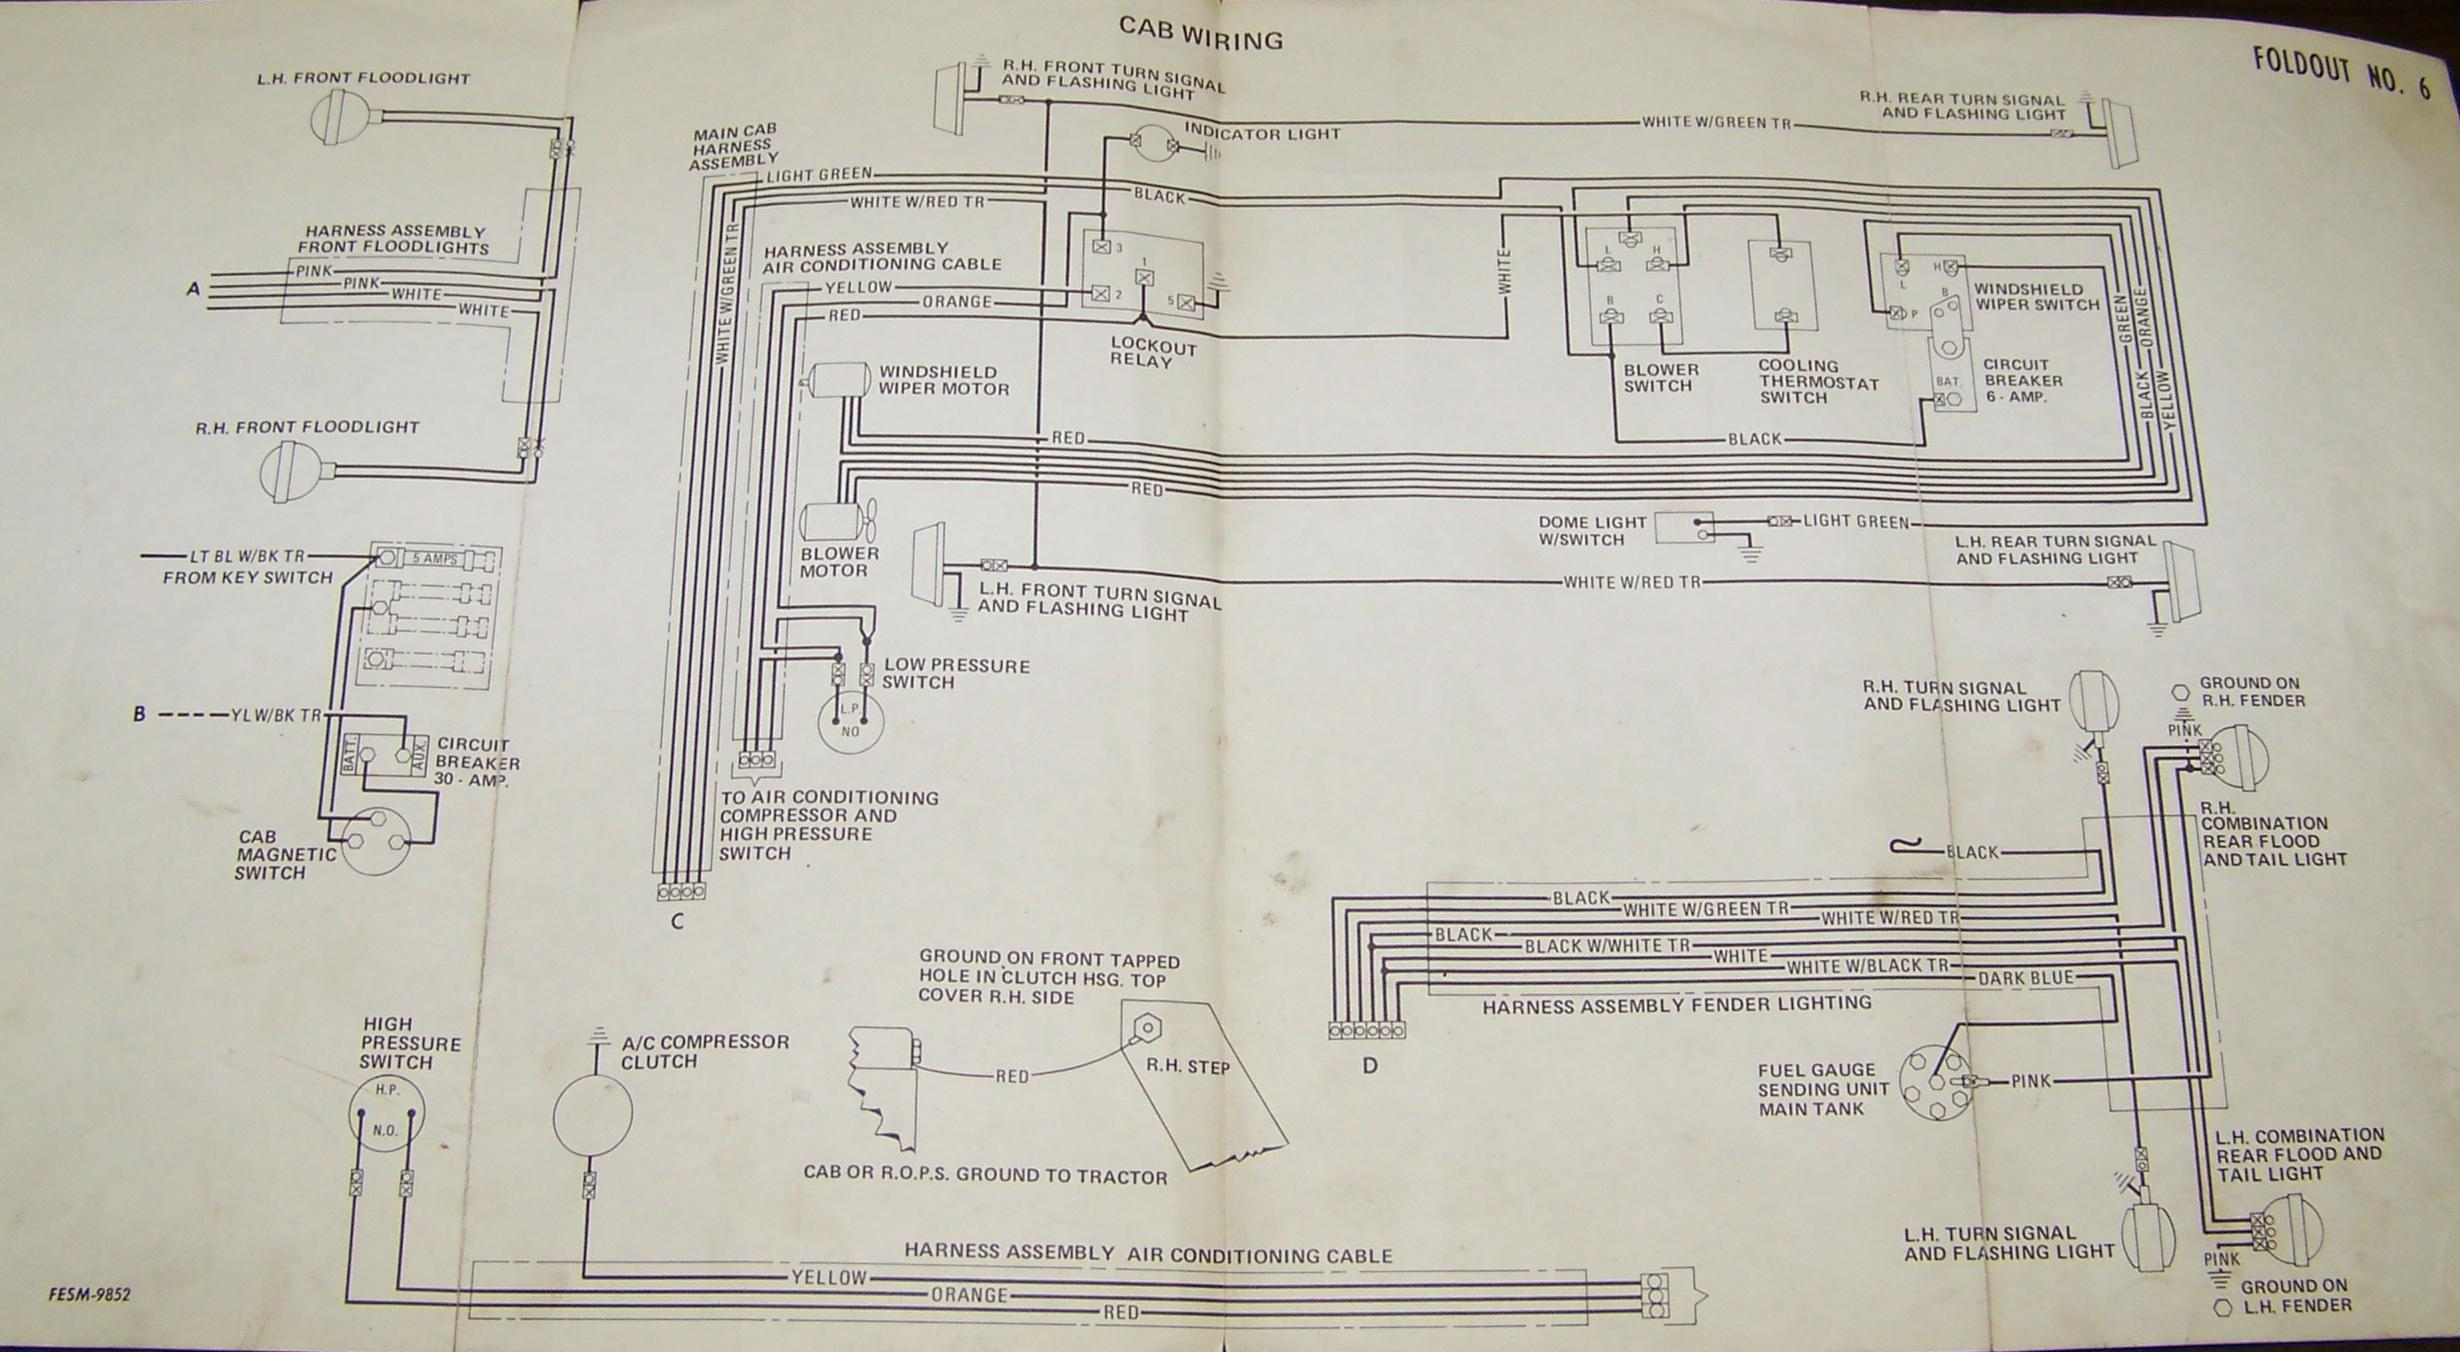 86series6 radio wiring diagram ih 1586 ih 1066 wiring diagram \u2022 wiring wiring diagram for farmall 826 diesel at bayanpartner.co